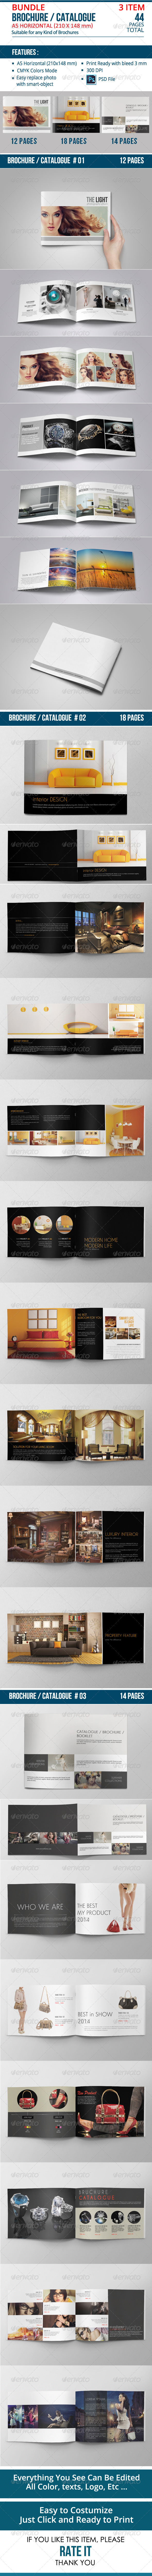 GraphicRiver Catalogue Brochure Bundle Vol 04 8634321